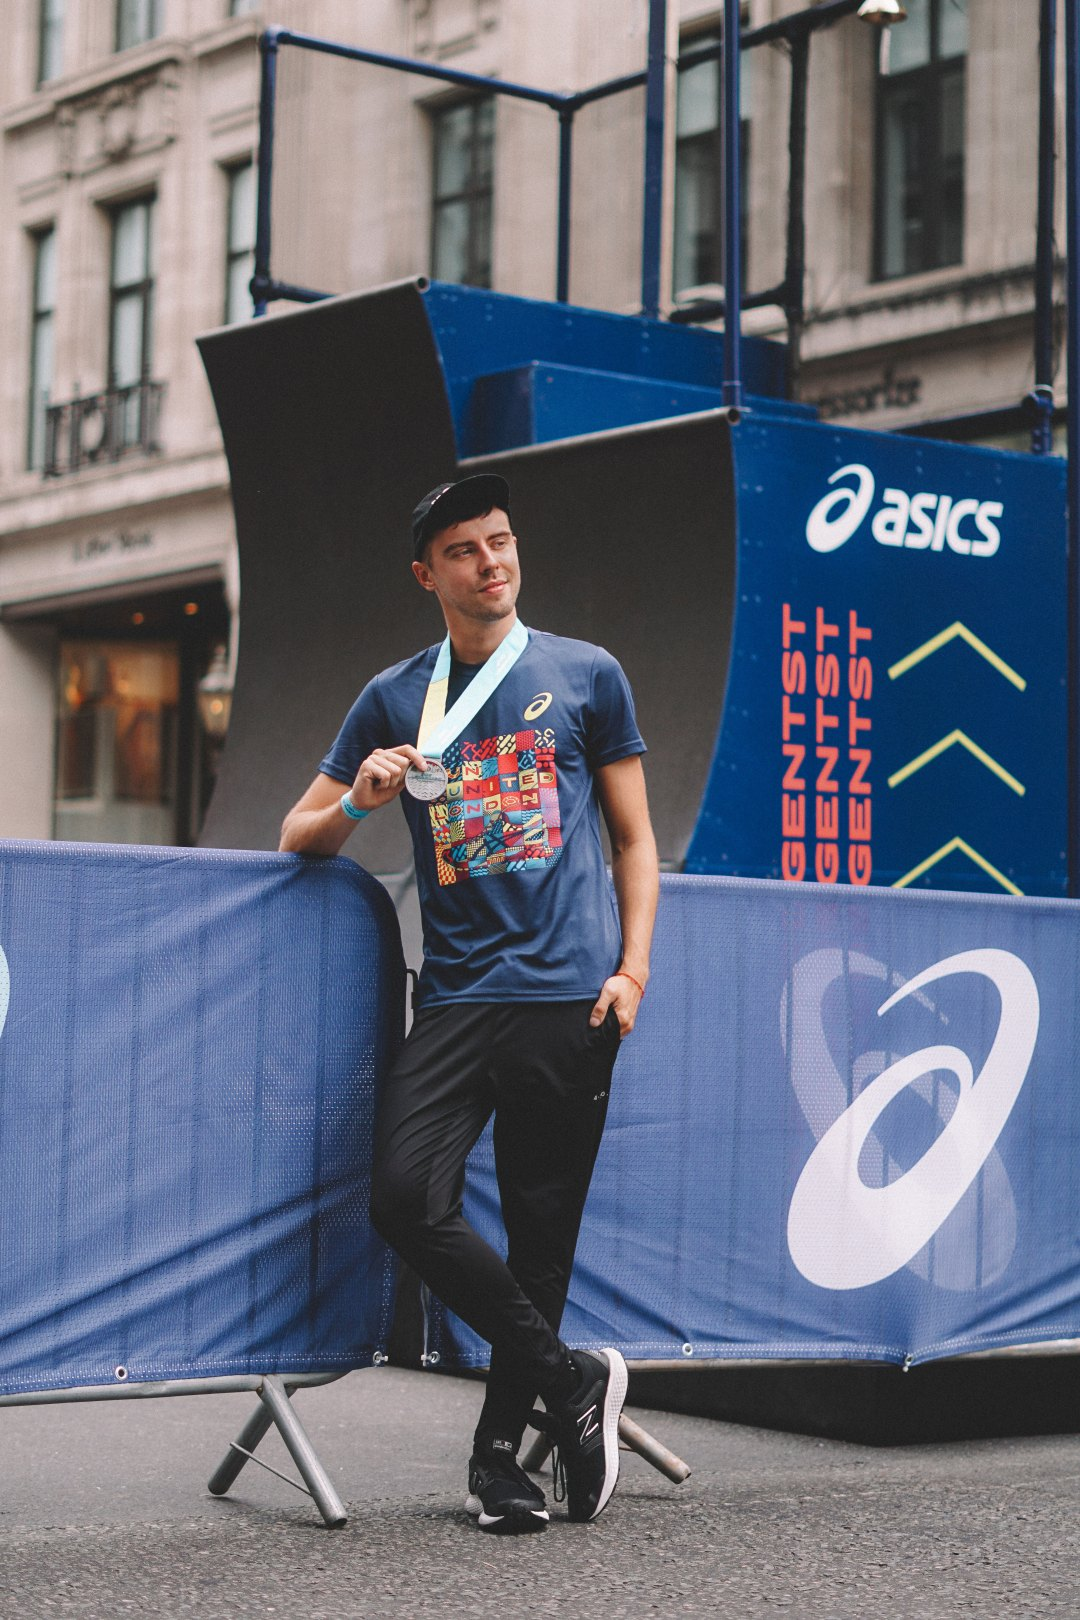 ASICS London 10k run with Virgin Sport. Blog by Skirmantas Petraitis.